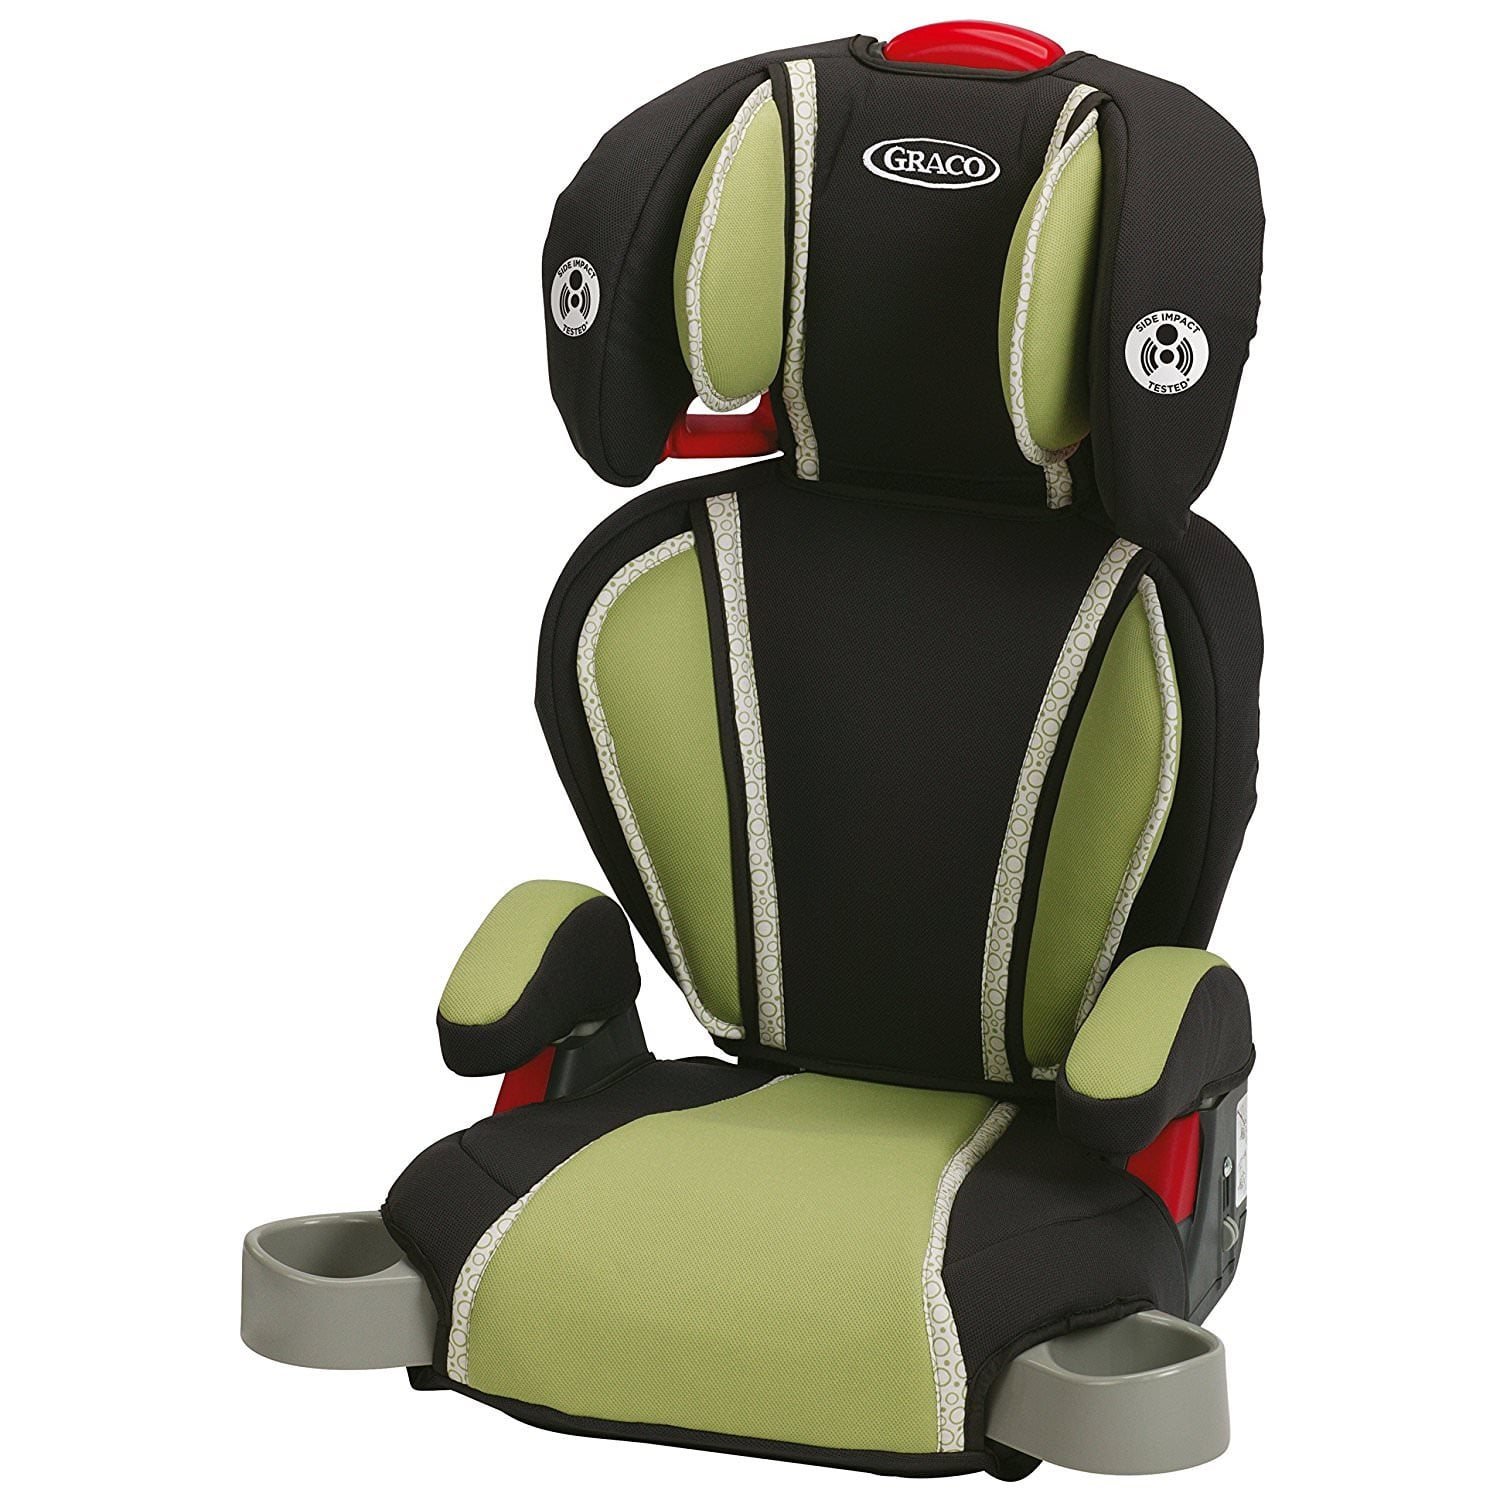 Graco Highback Turbobooster Car Seat, Go Green for $29.99 + free shipping at Amazon